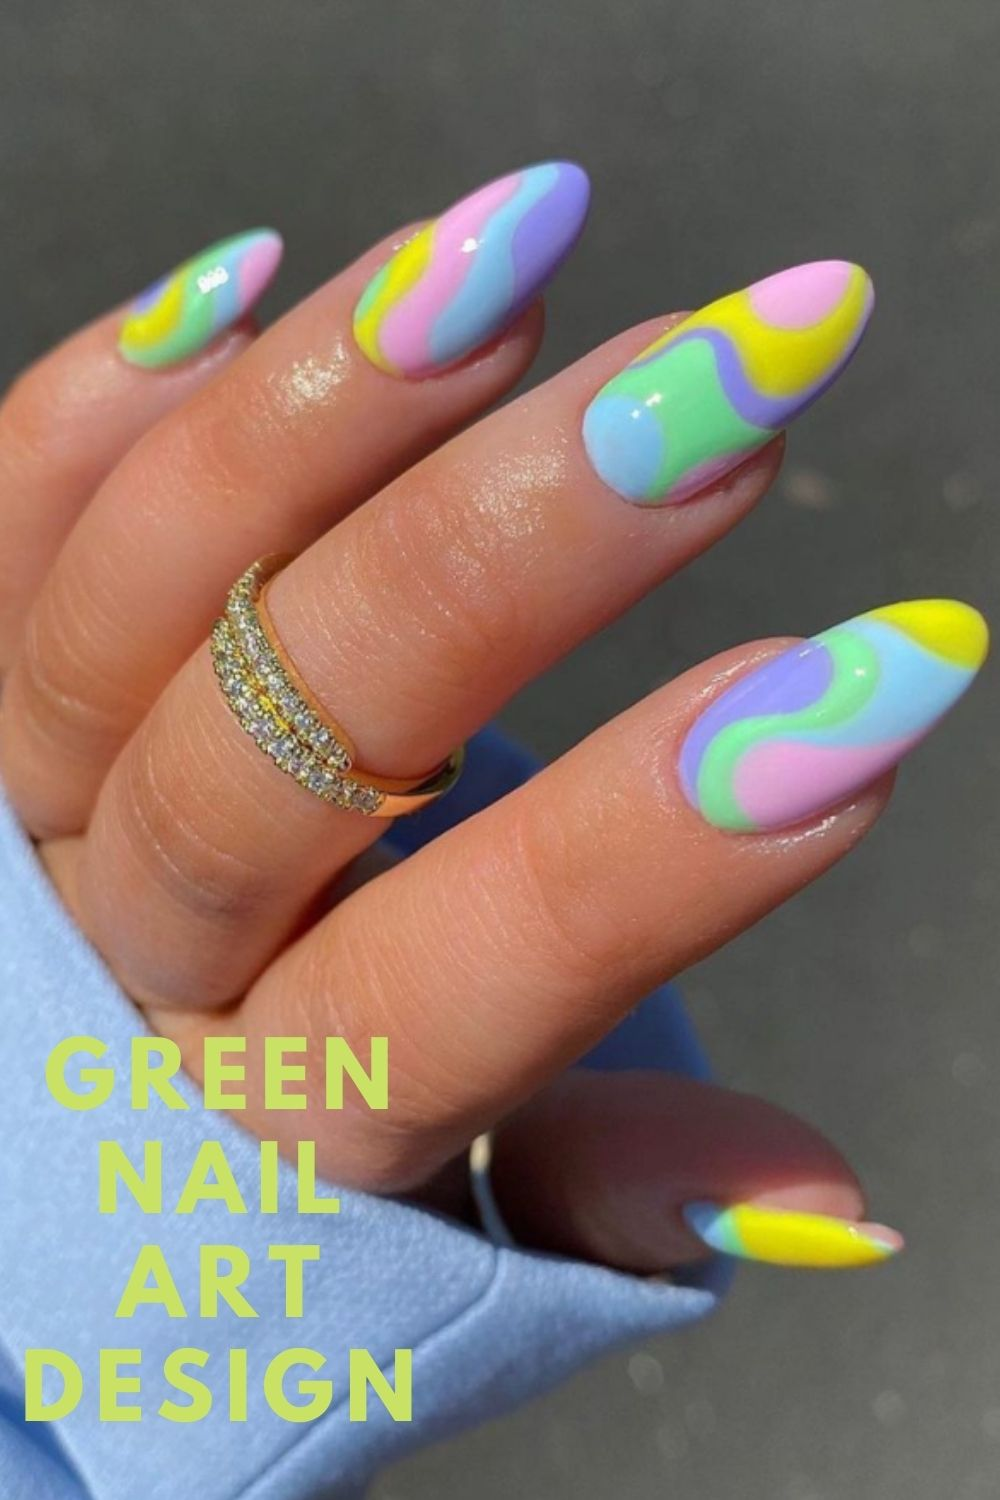 Almond nails designs with pastel nails